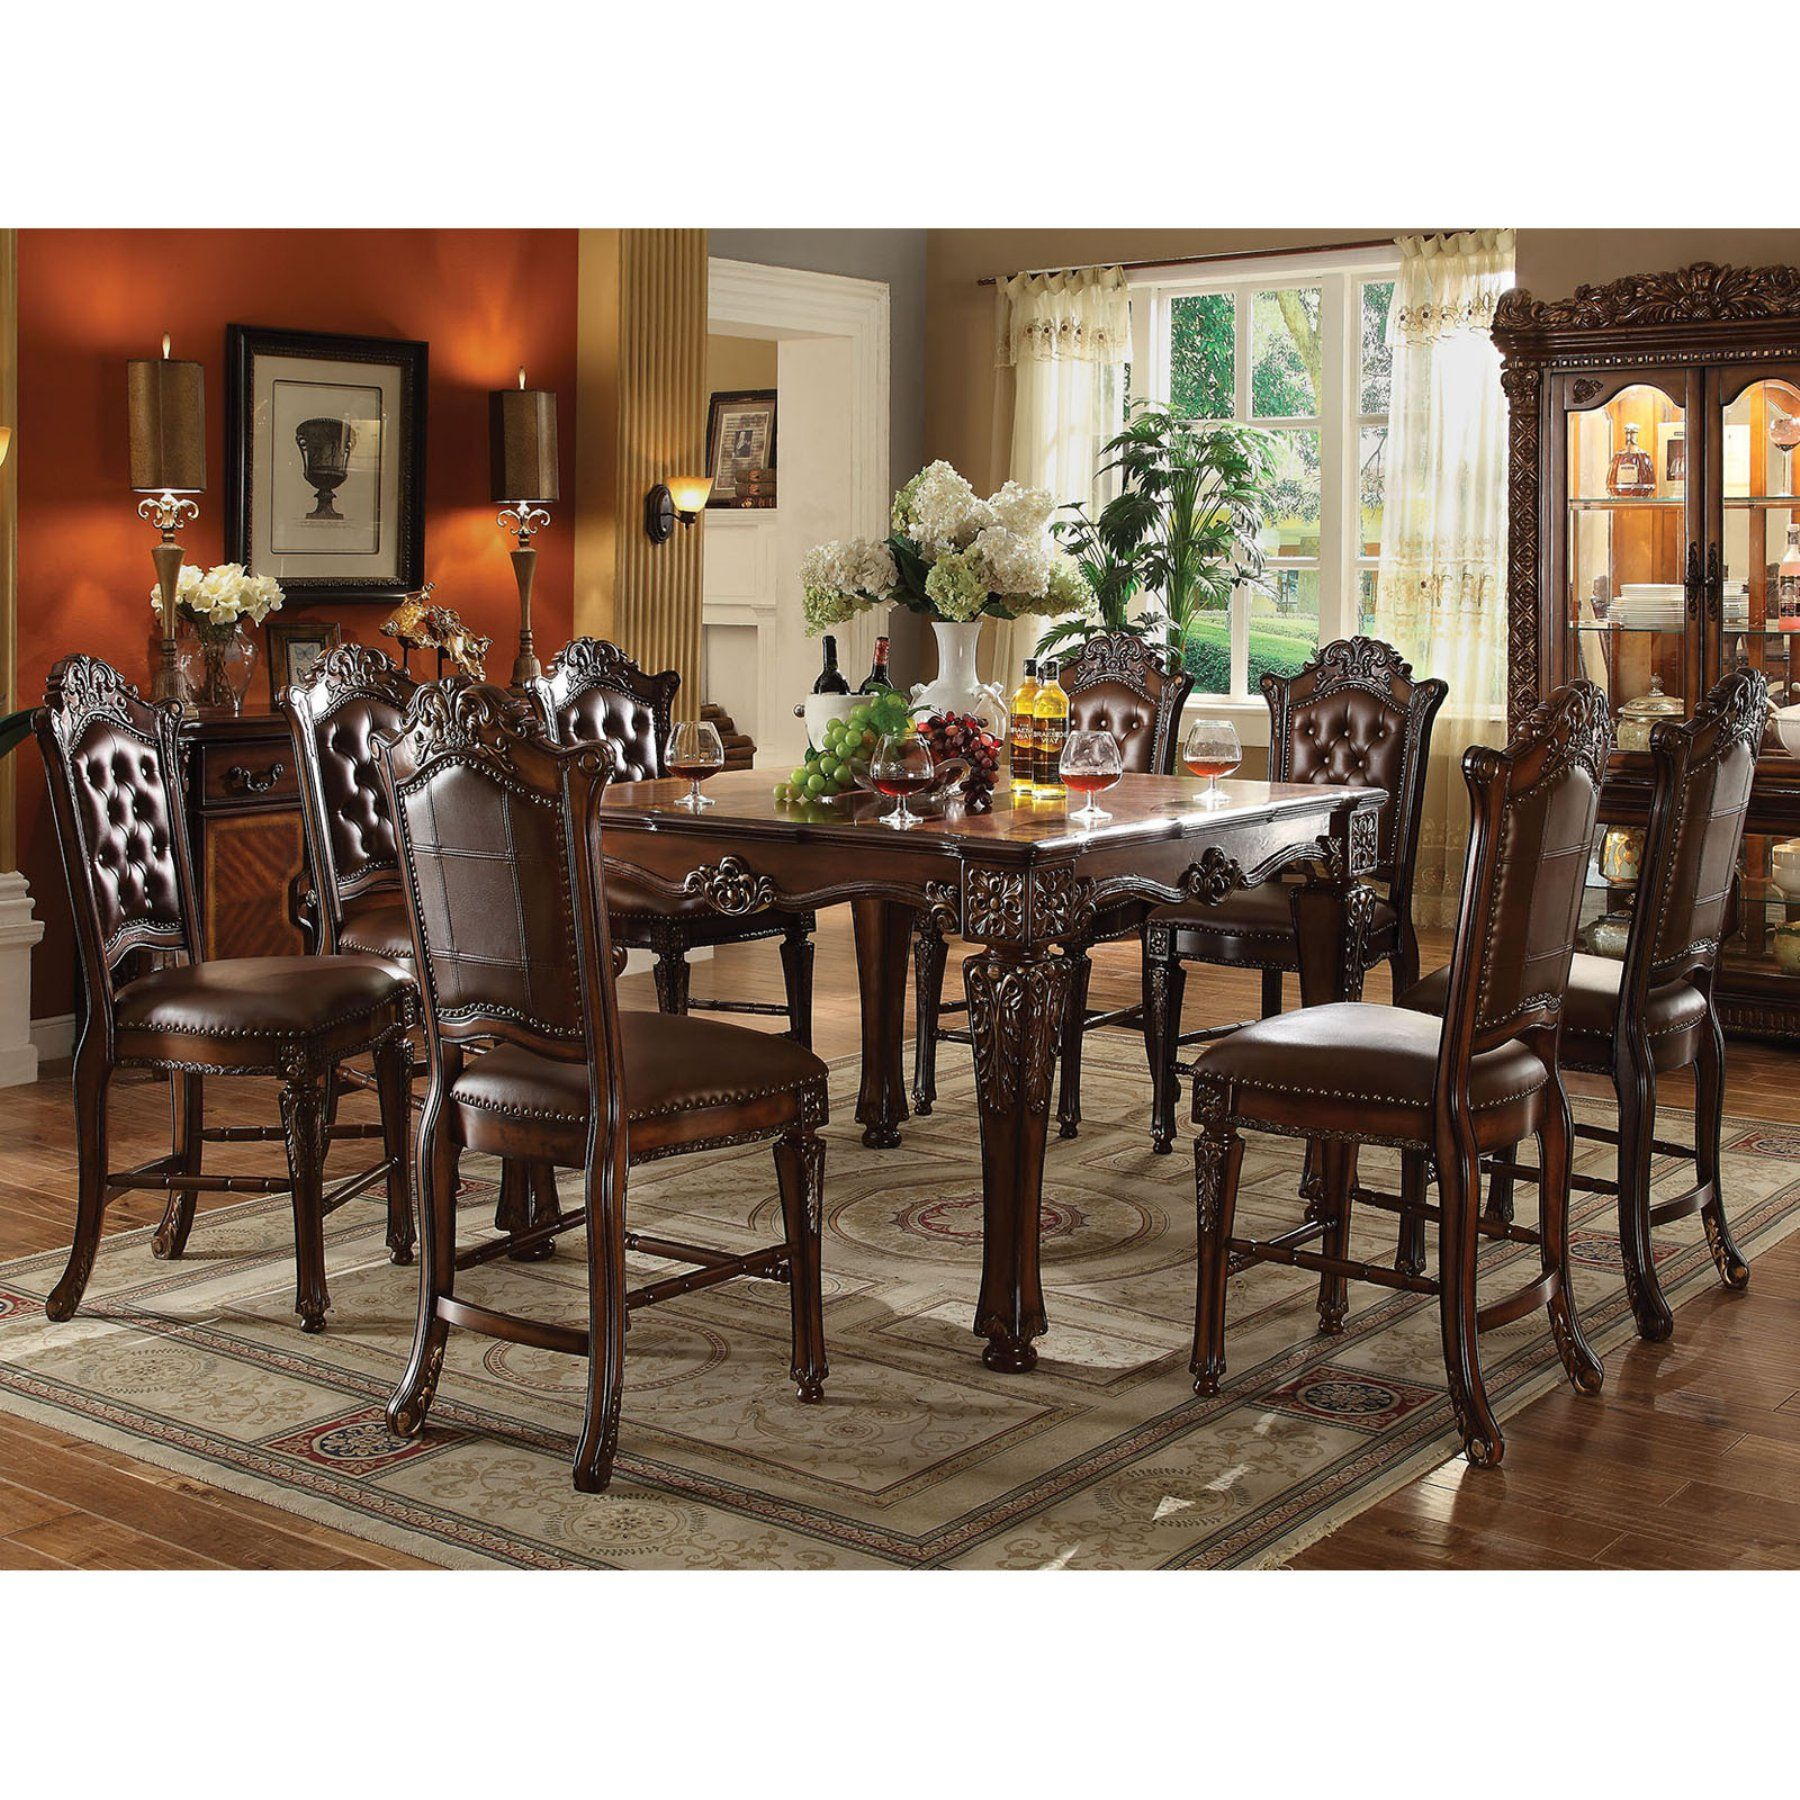 Acme Furniture Vendome 9 Piece Square Counter Height Dining Table Custom Acme Dining Room Set Review